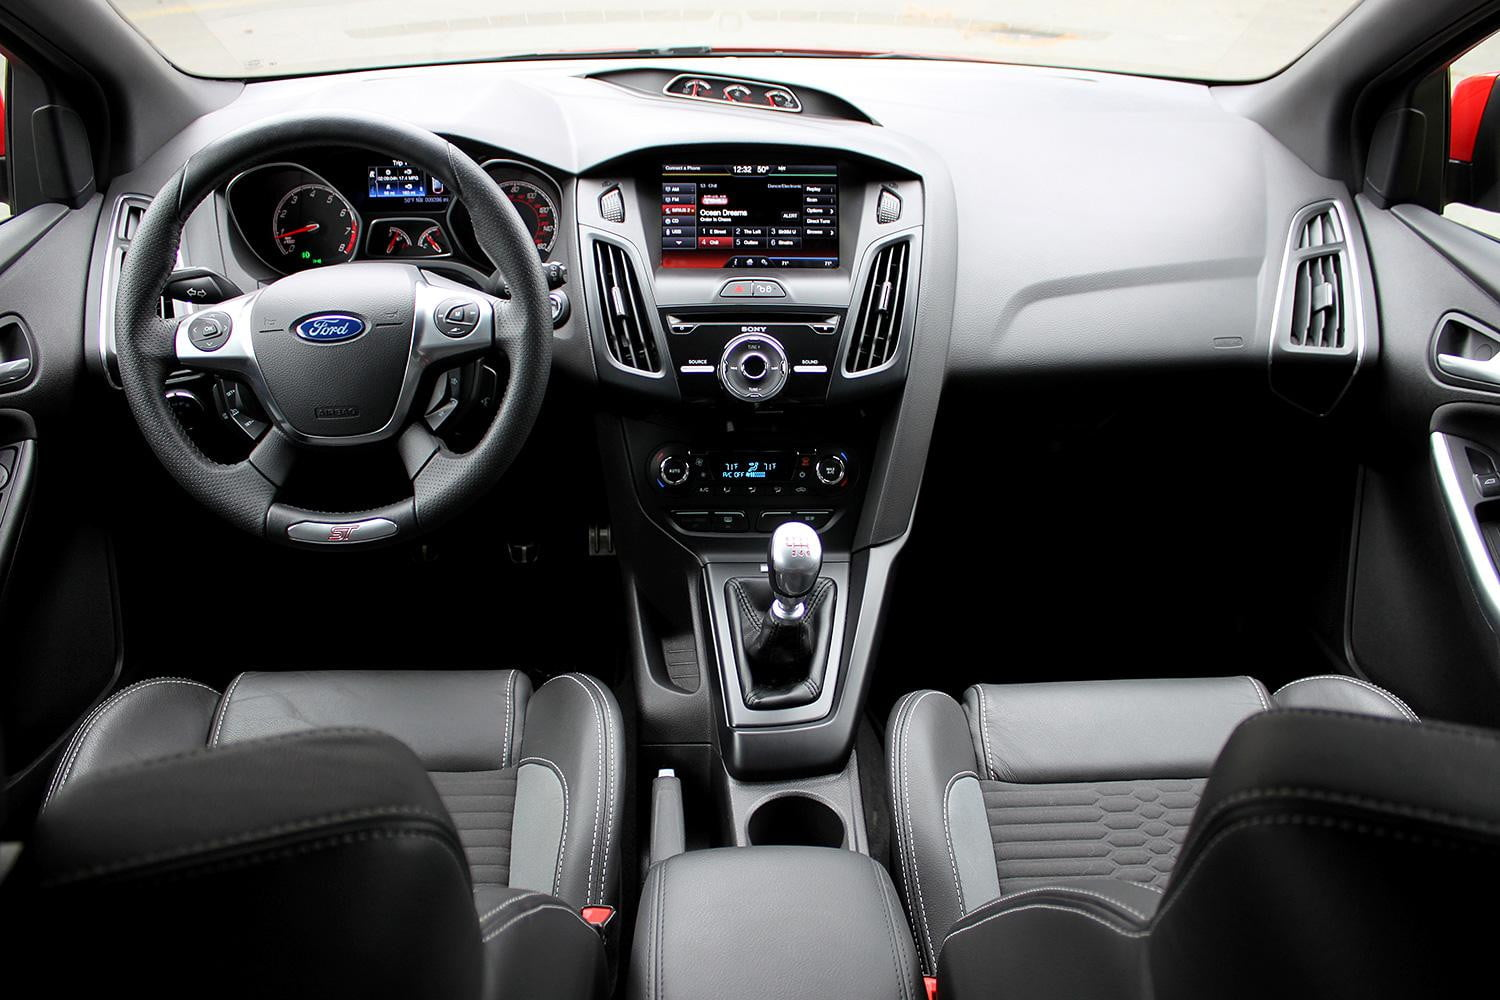 ford focus st review cabin front - Ford Focus St Interior